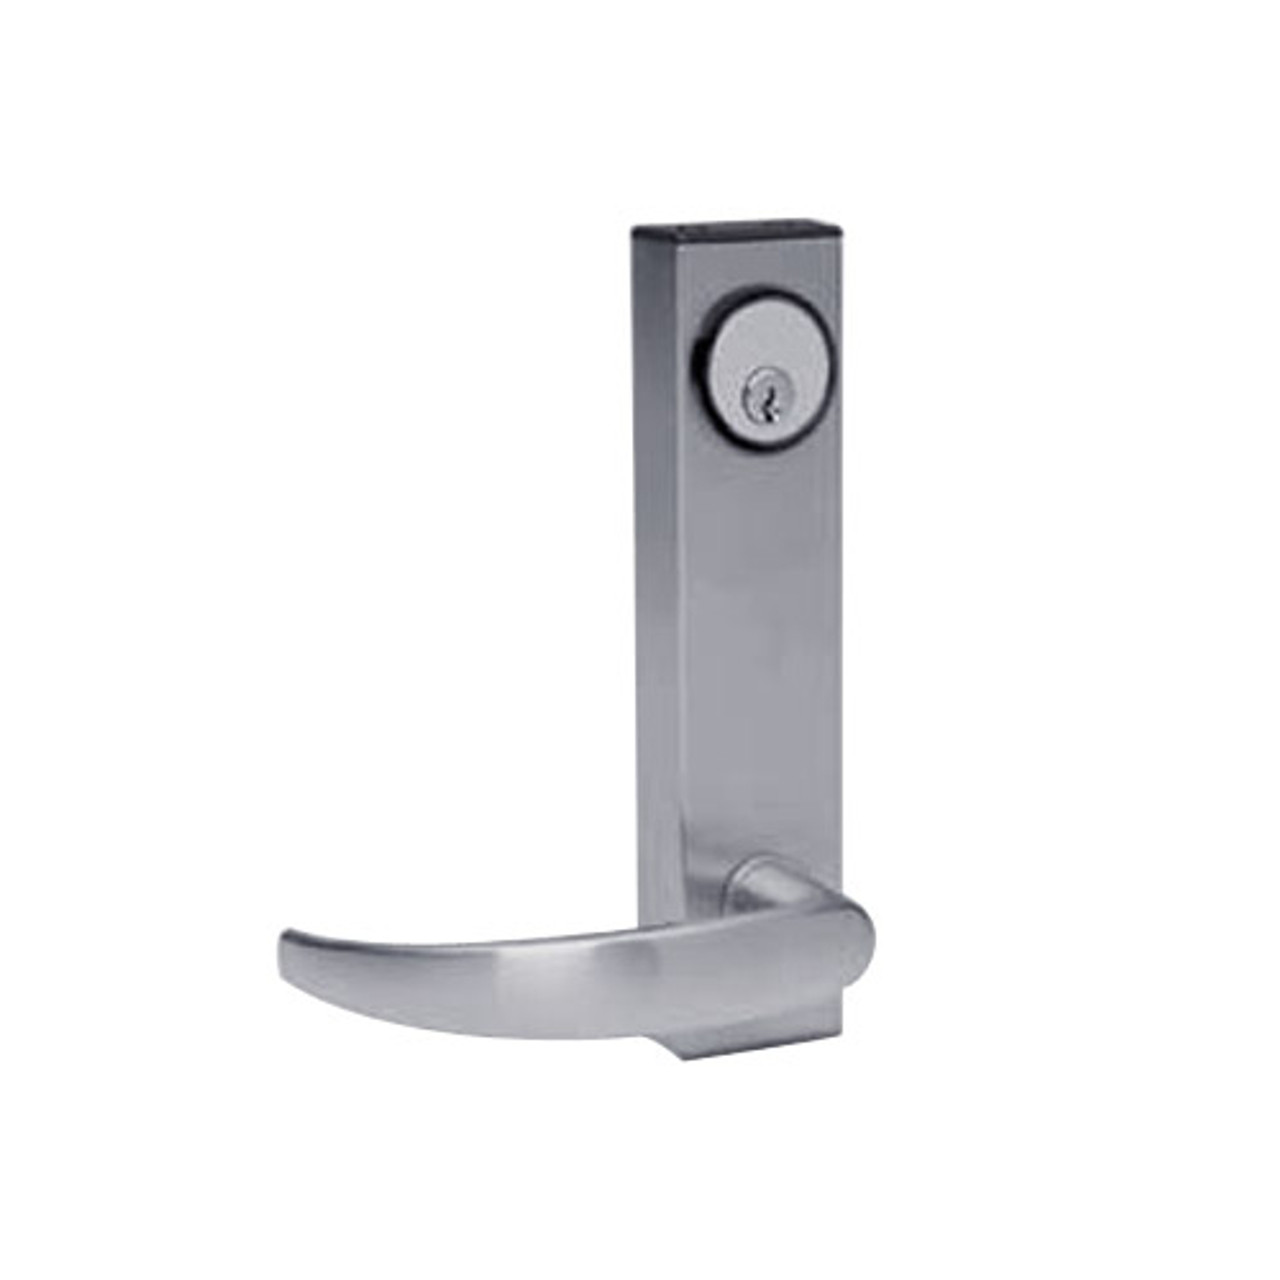 3080E-01-0-97-35 US32D Adams Rite Electrified Entry Trim with Curve Lever in Satin Stainless Finish